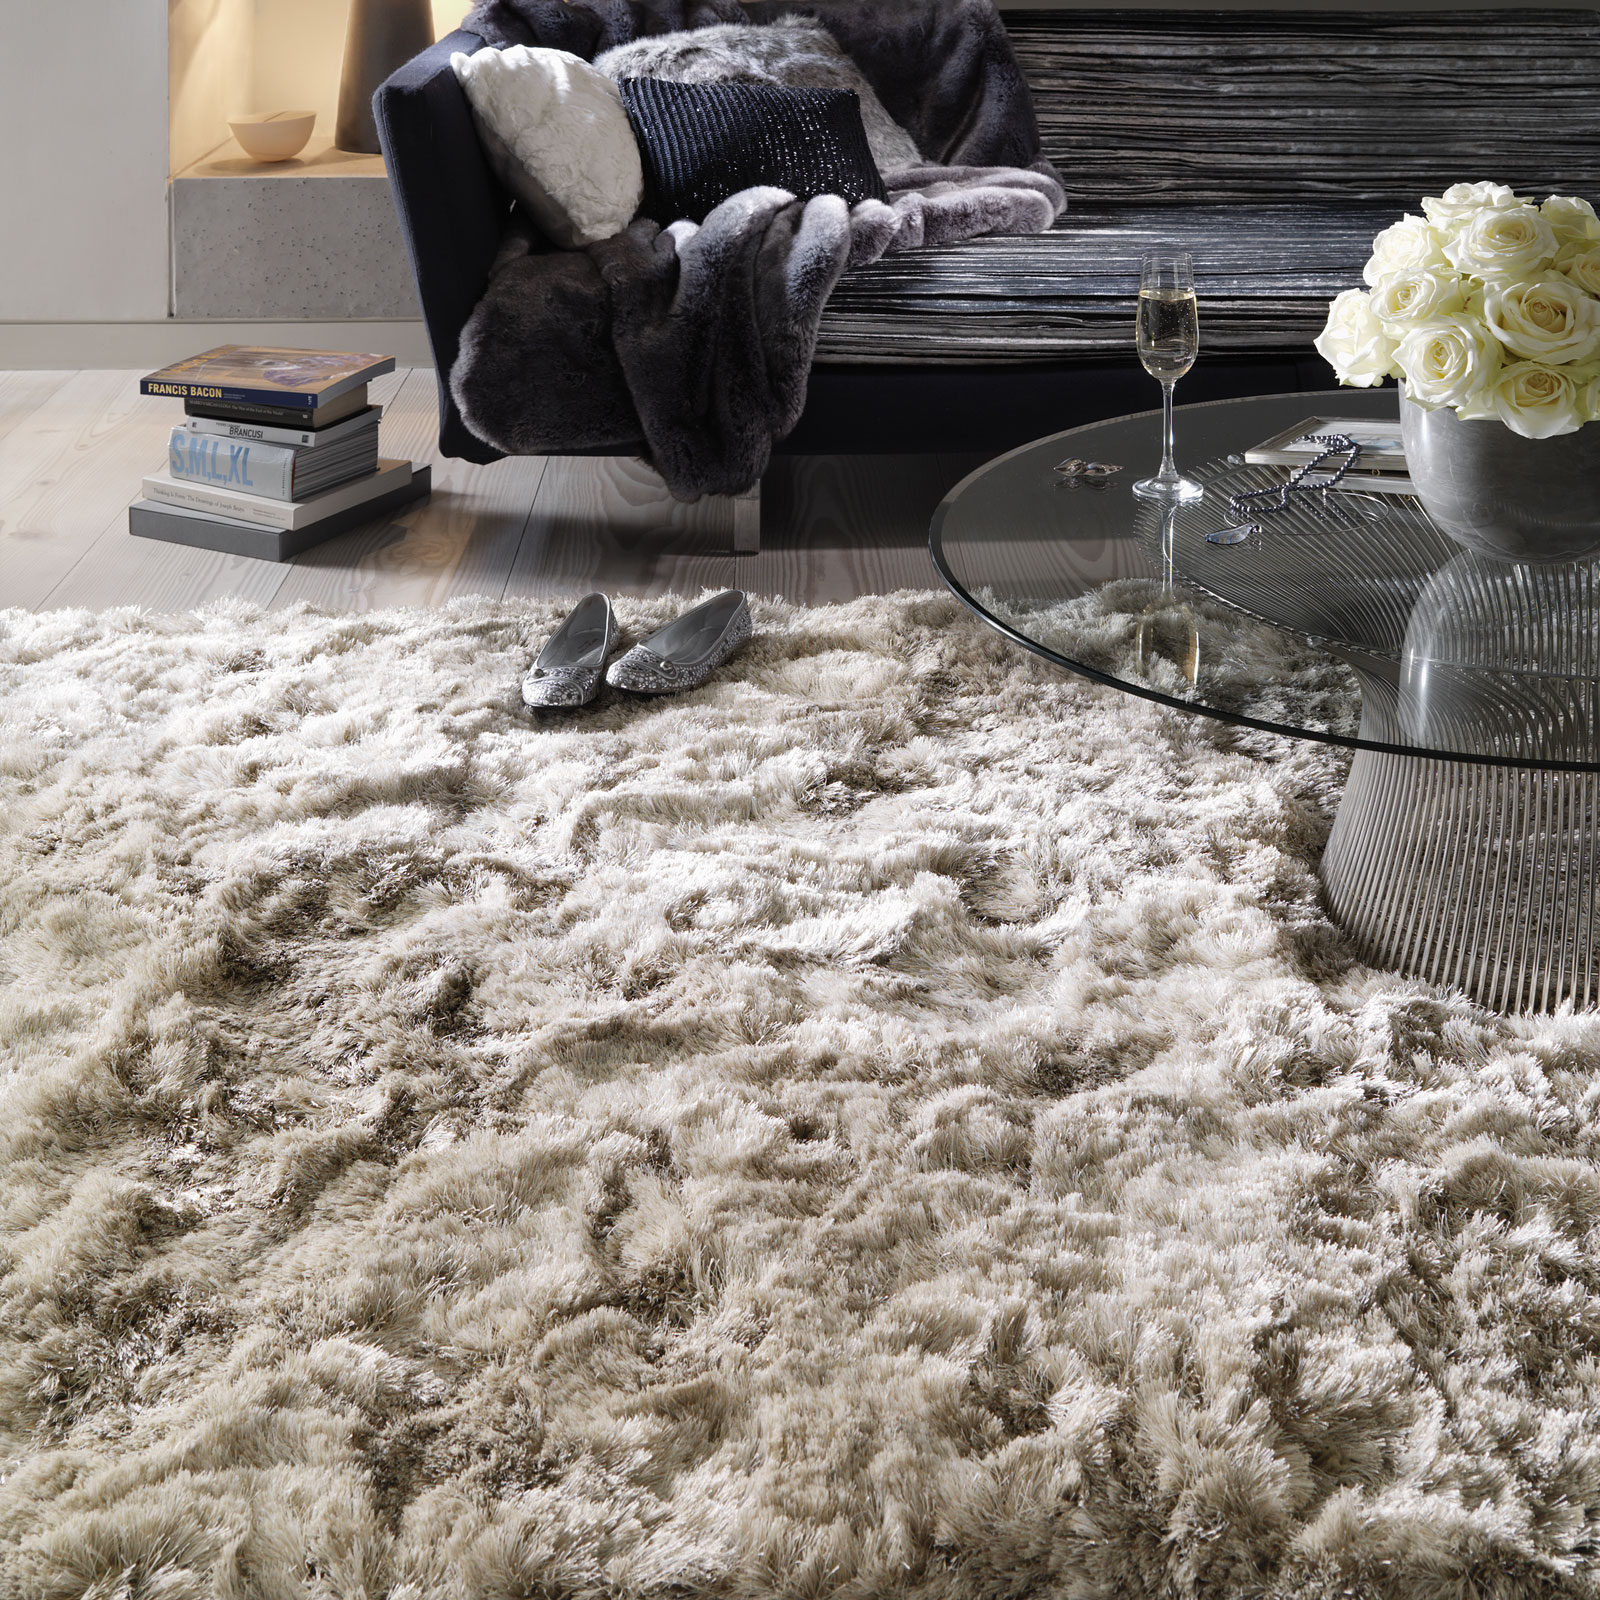 Plush Shaggy rugs in sand from the rug seller